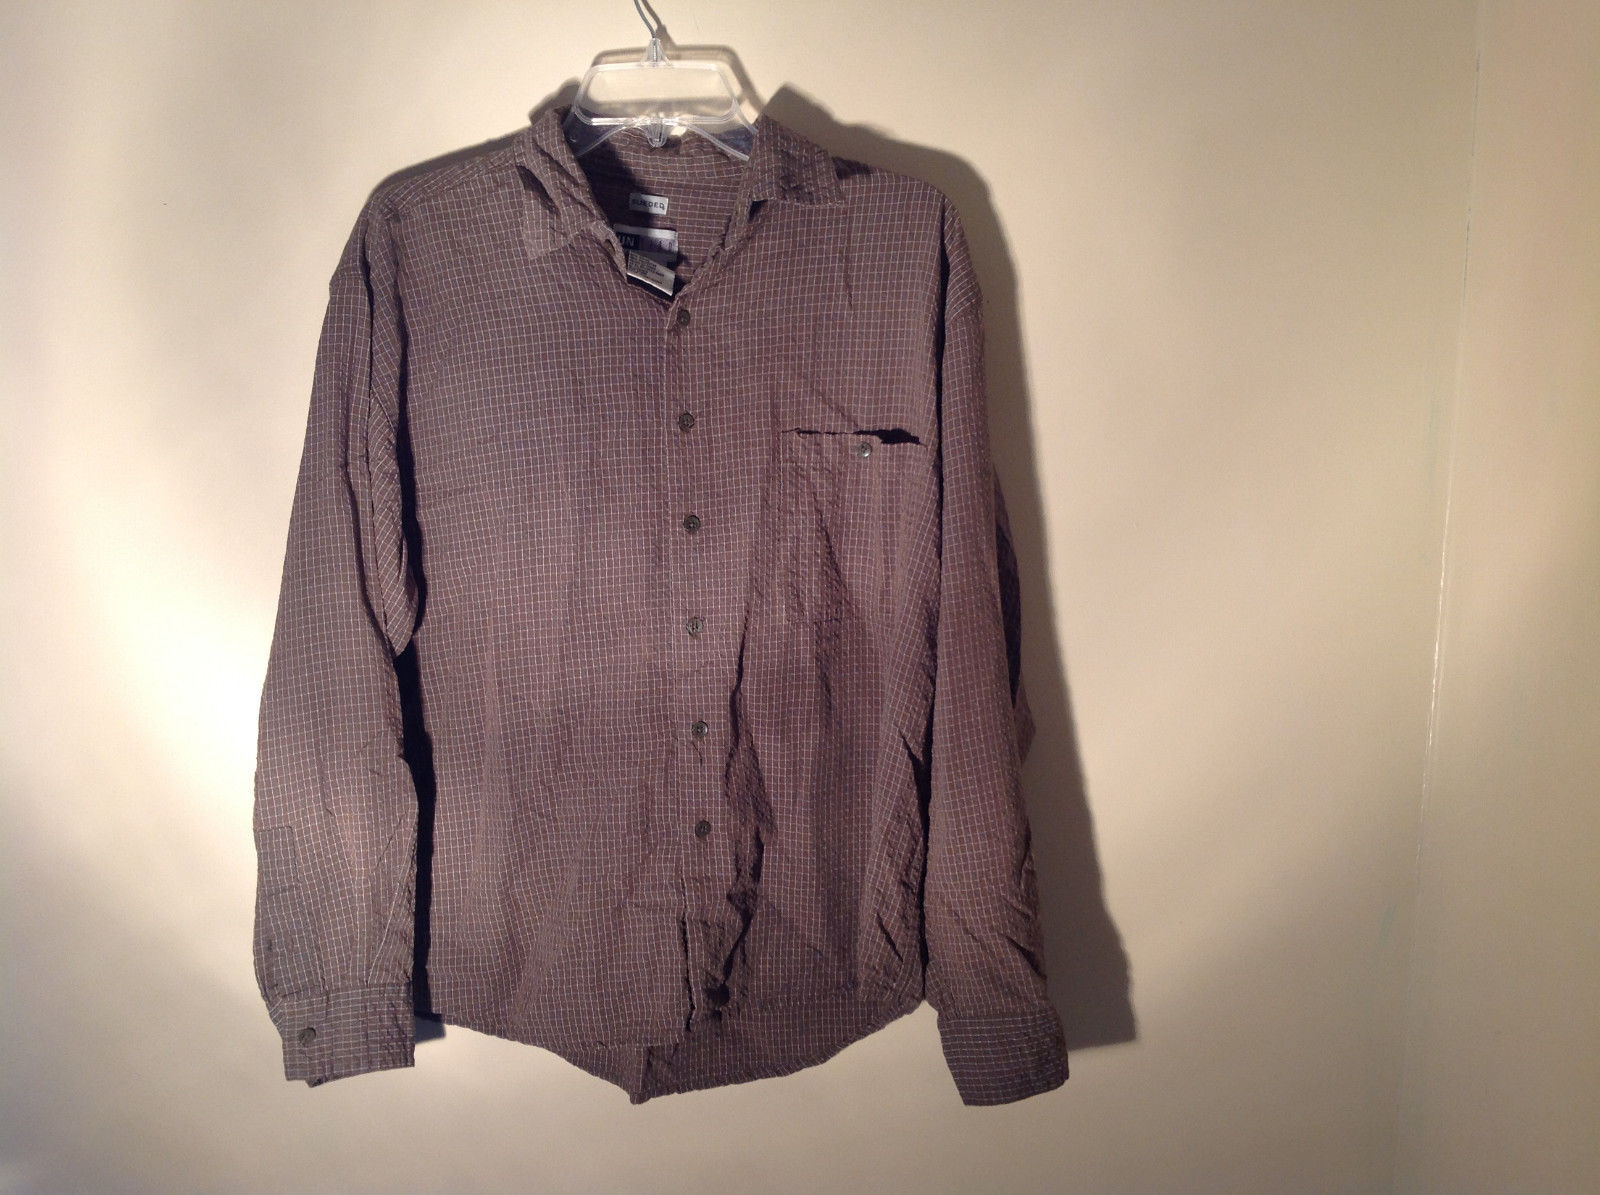 Brown Square Pattern Button Up Collar Long Sleeve Casual Shirt by United Size L